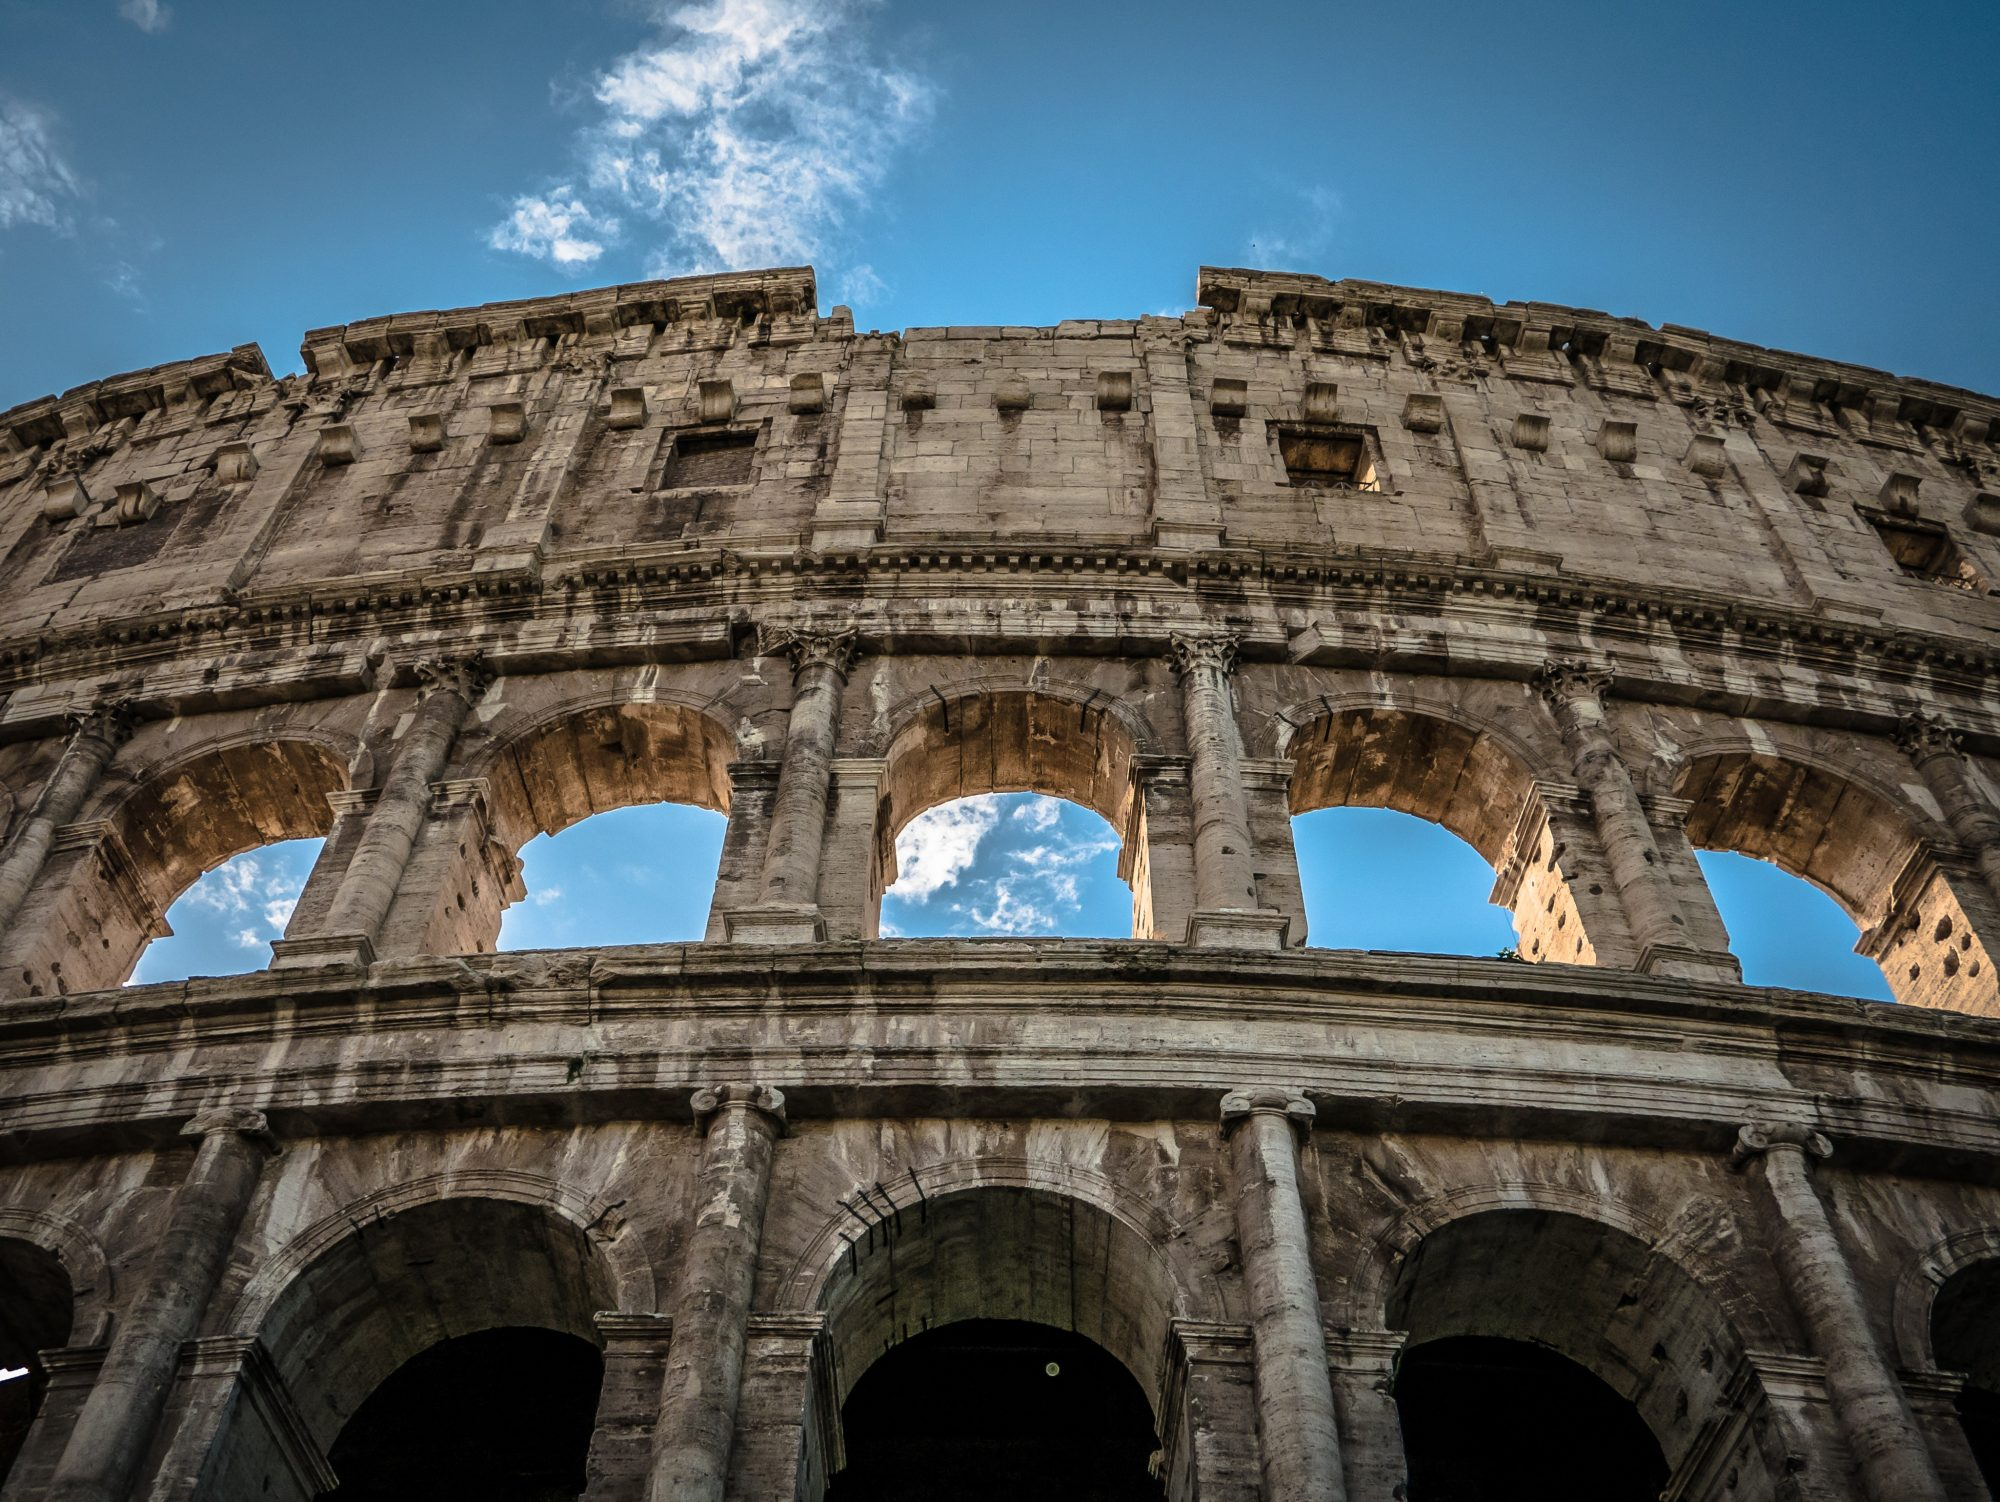 Politics Of Taxation In The Roman Empire Austaxpolicy The Tax And Transfer Policy Blog